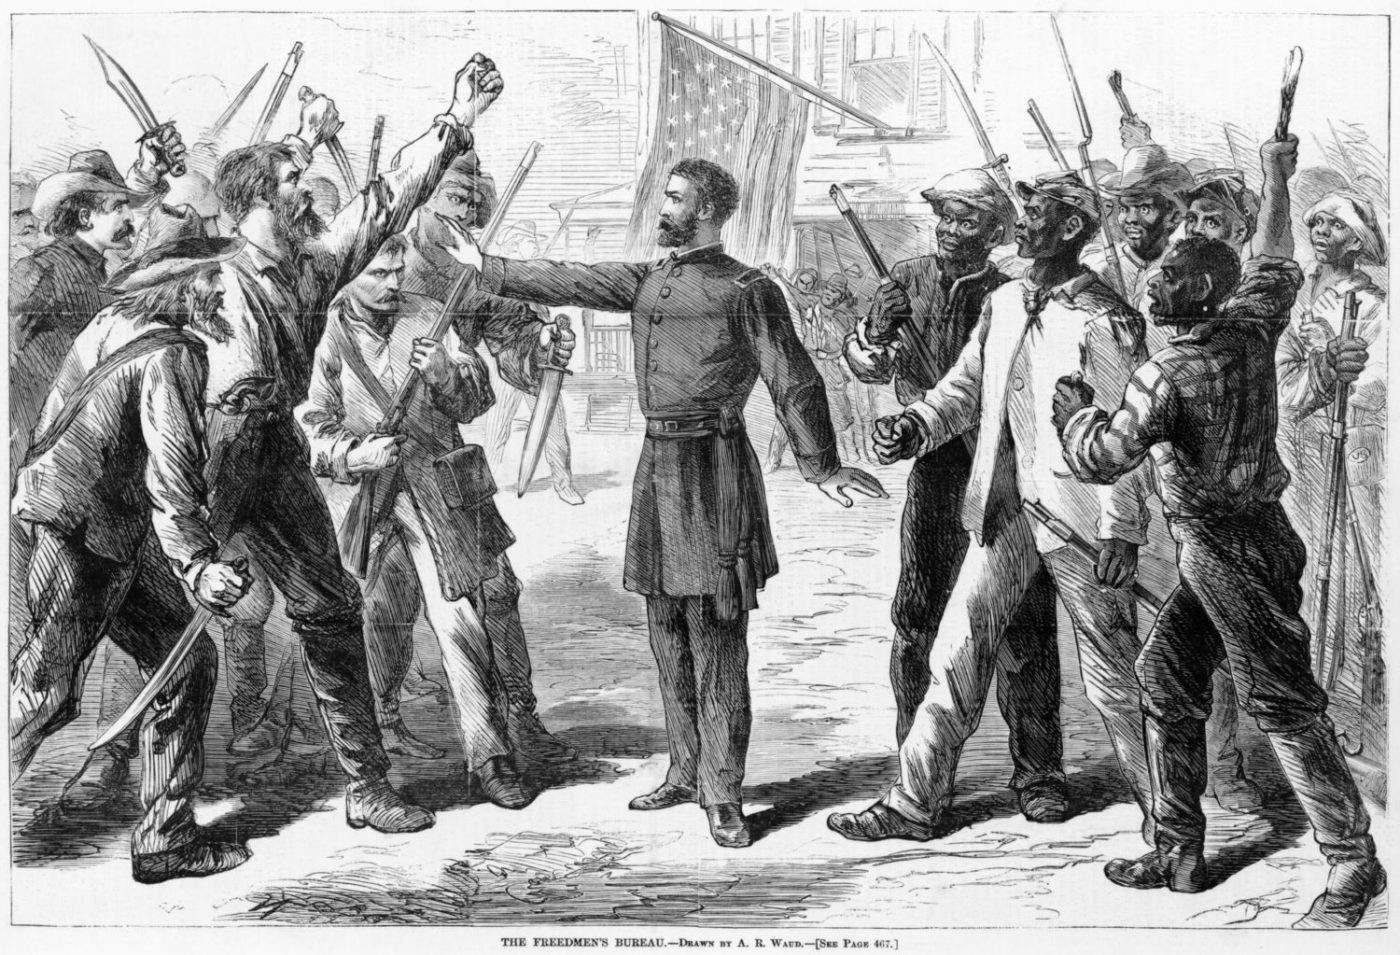 The-Freedmens-Bureau-Gen.-Shermans-40-acres-a-mule-separating-warring-whites-Blacks-art-by-Alfred-Waud-1868-Library-of-Congress-1400x955, A Black storyteller chronicles the history of slavery and freedom, Culture Currents